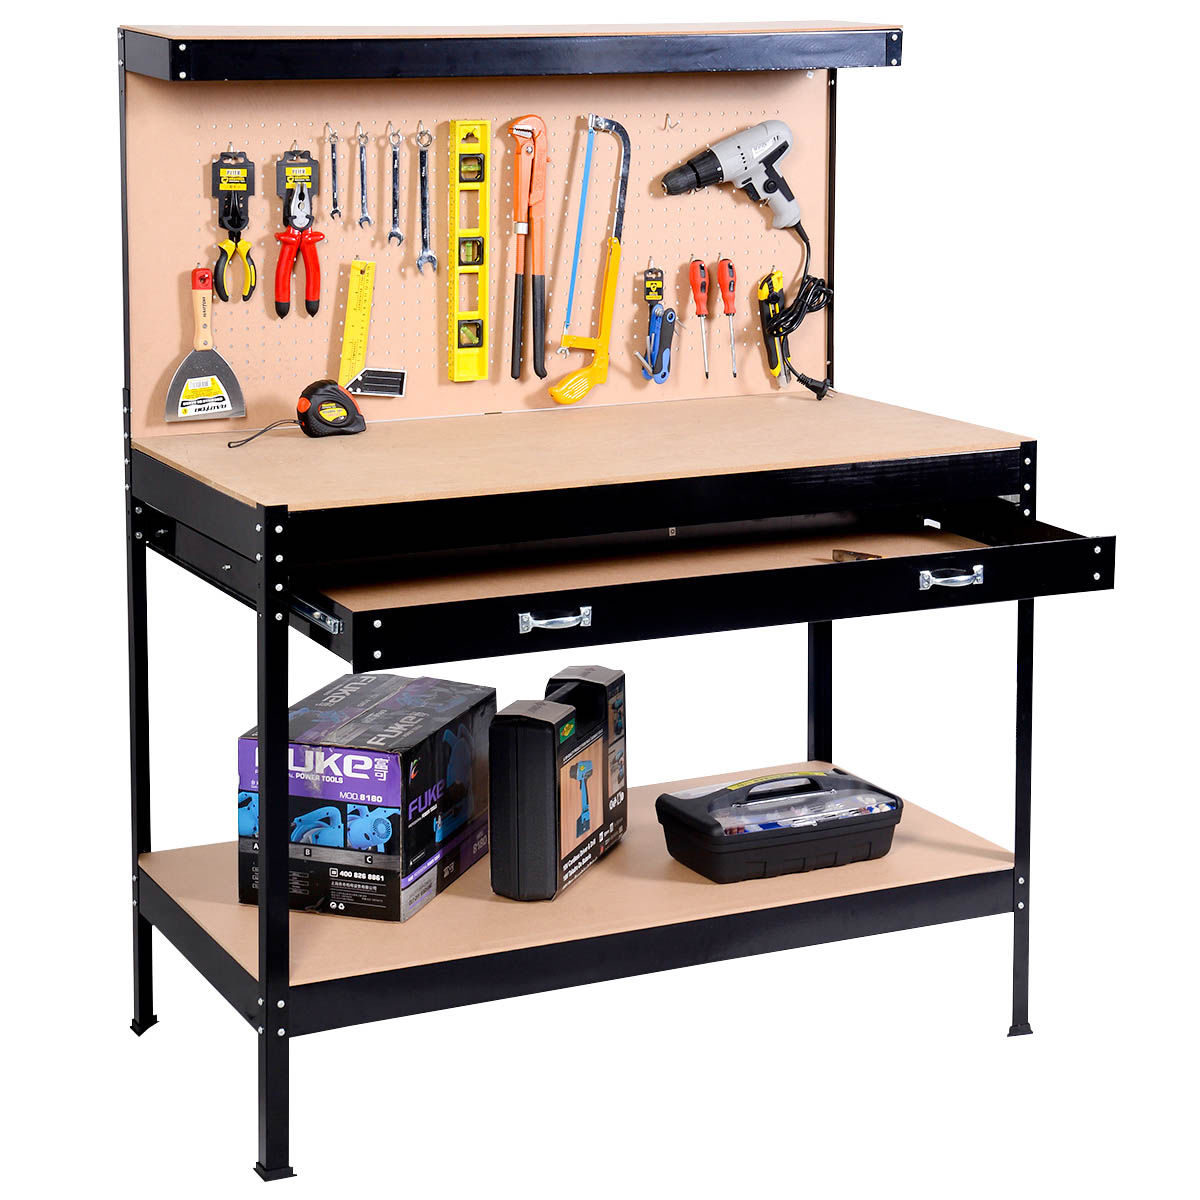 Costway Work Bench Tool Storage Steel Frame Tool Workshop Table W/ Drawer and Peg Boar